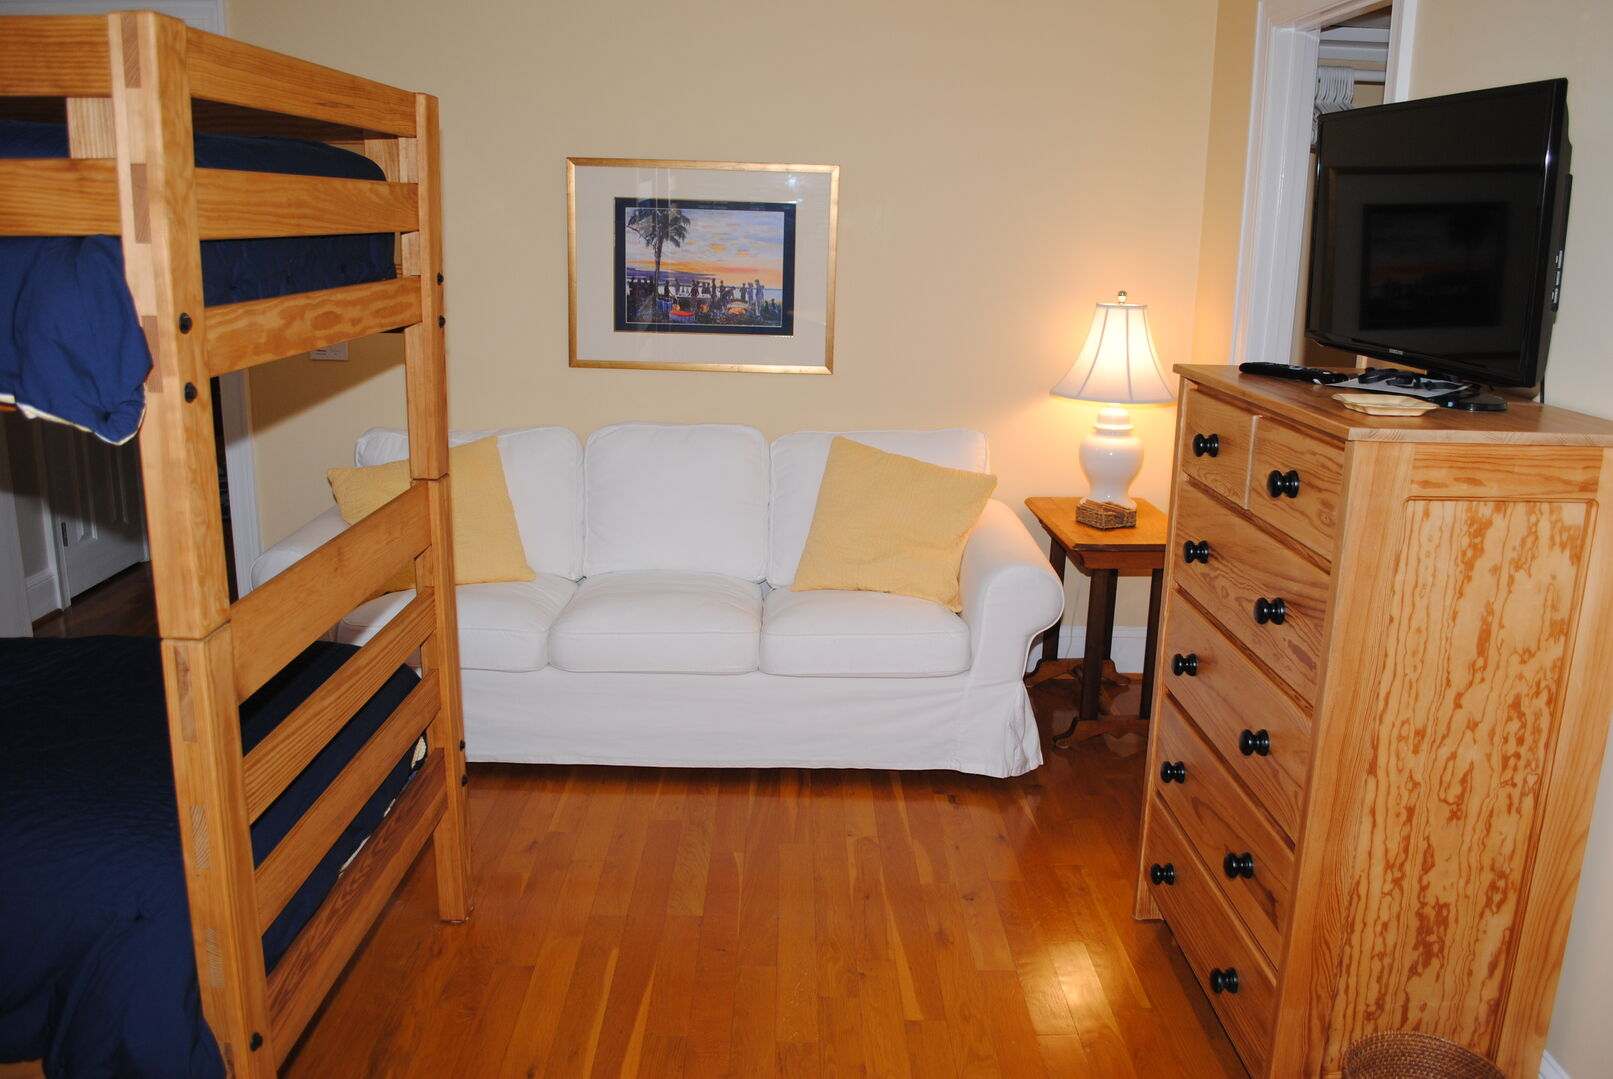 2 Sets of Bunk Beds - Second Floor